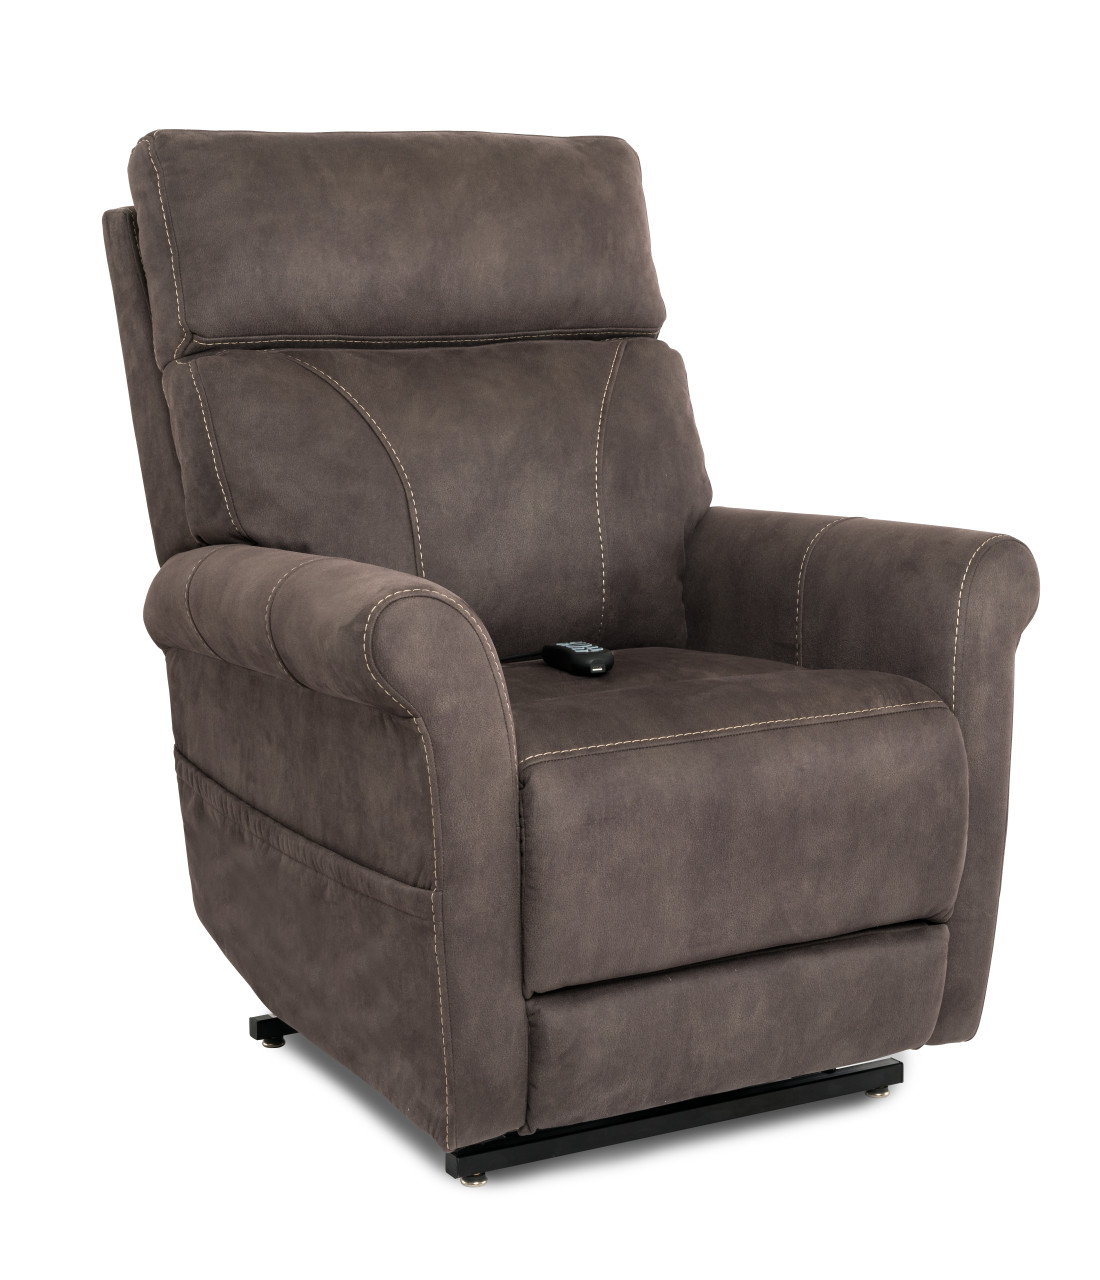 Urbana Lift Chair Seated in Gunmetal